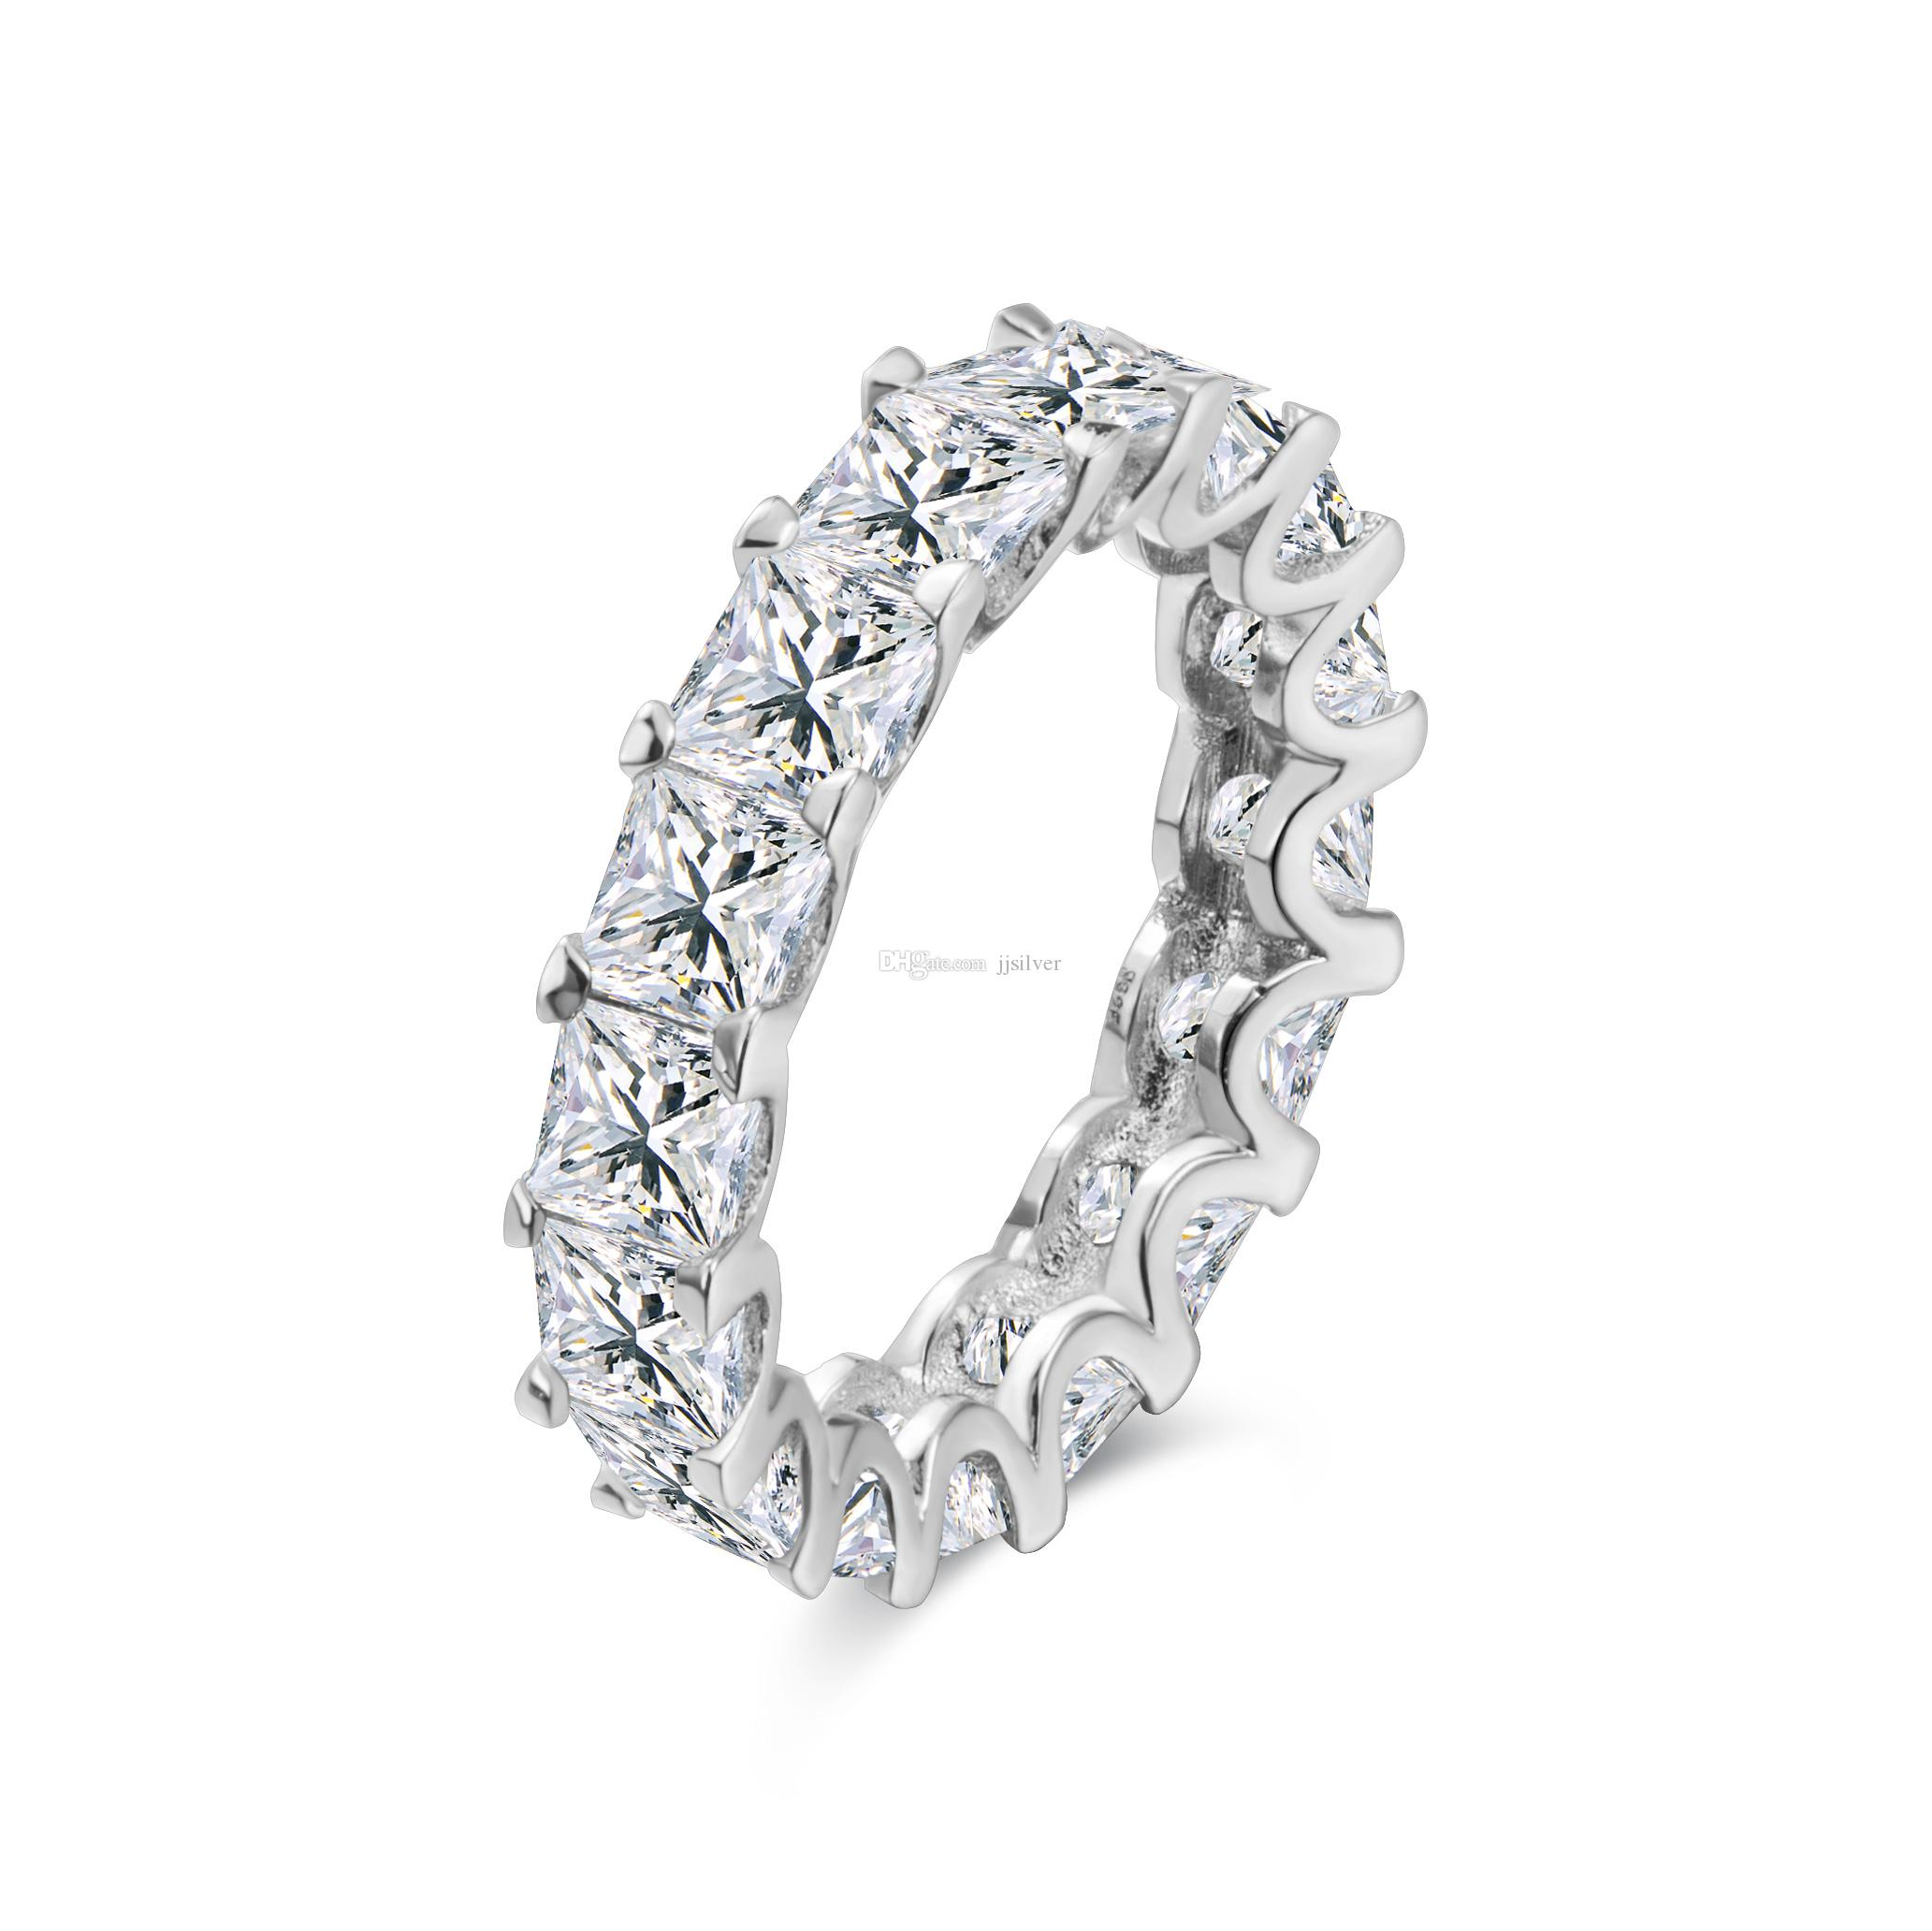 Fashion jewelry 100% New Brand Design 18K White Gold GF Swarovski Crystal Wedding Band Ring Sz 6-8 Gift the whole row with color cz